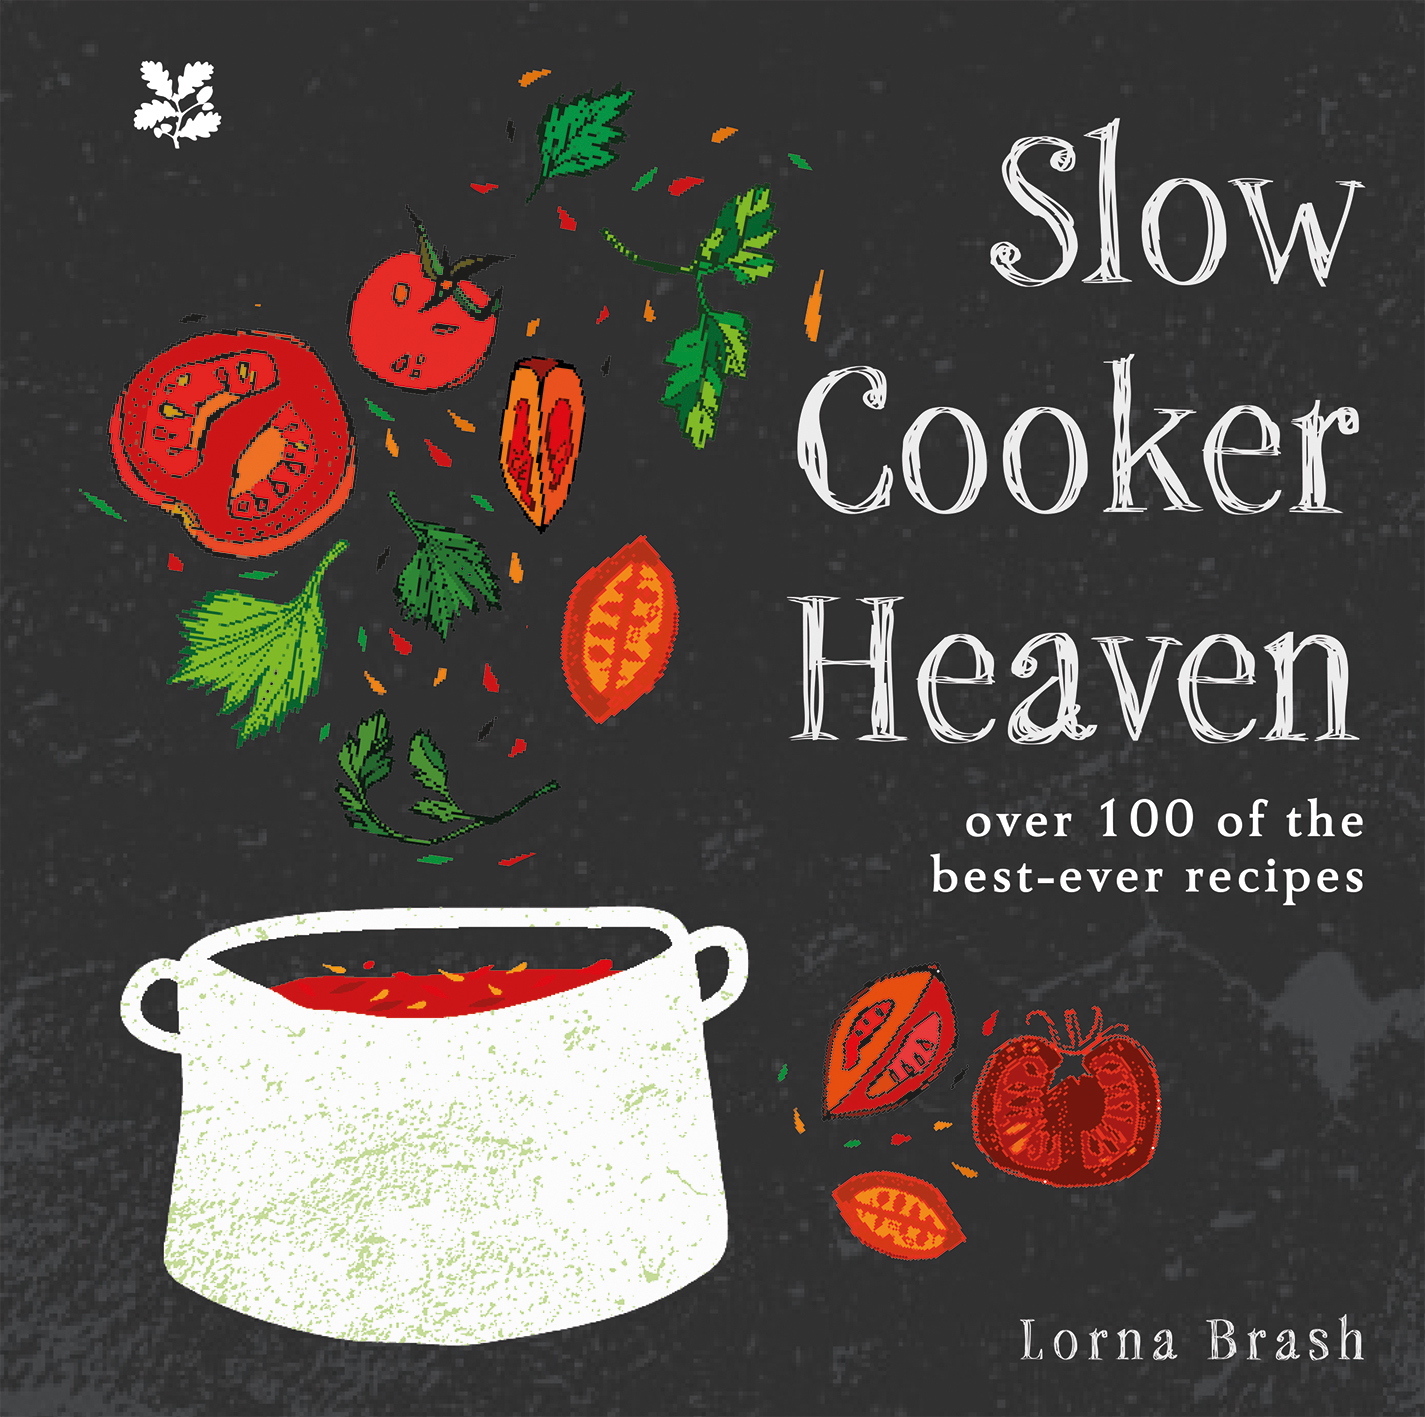 Slow Cooker Heaven